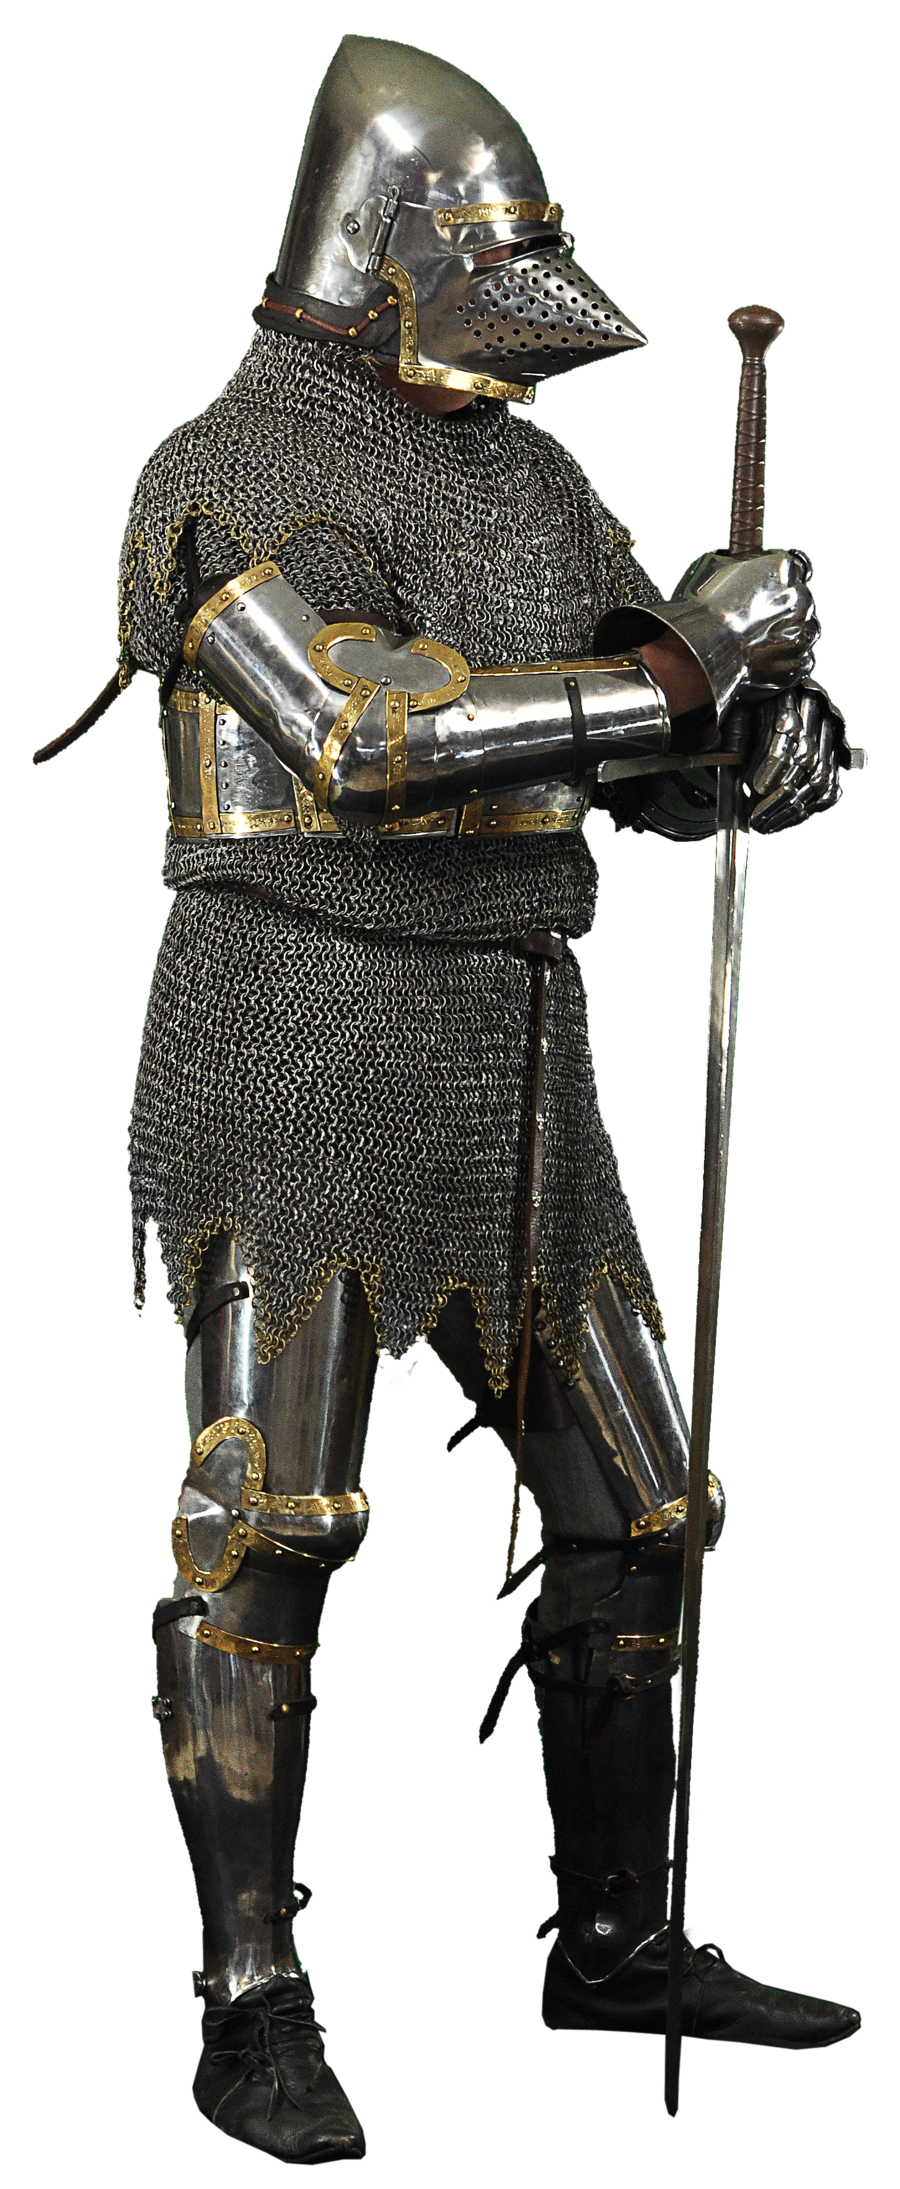 transparent knight backround